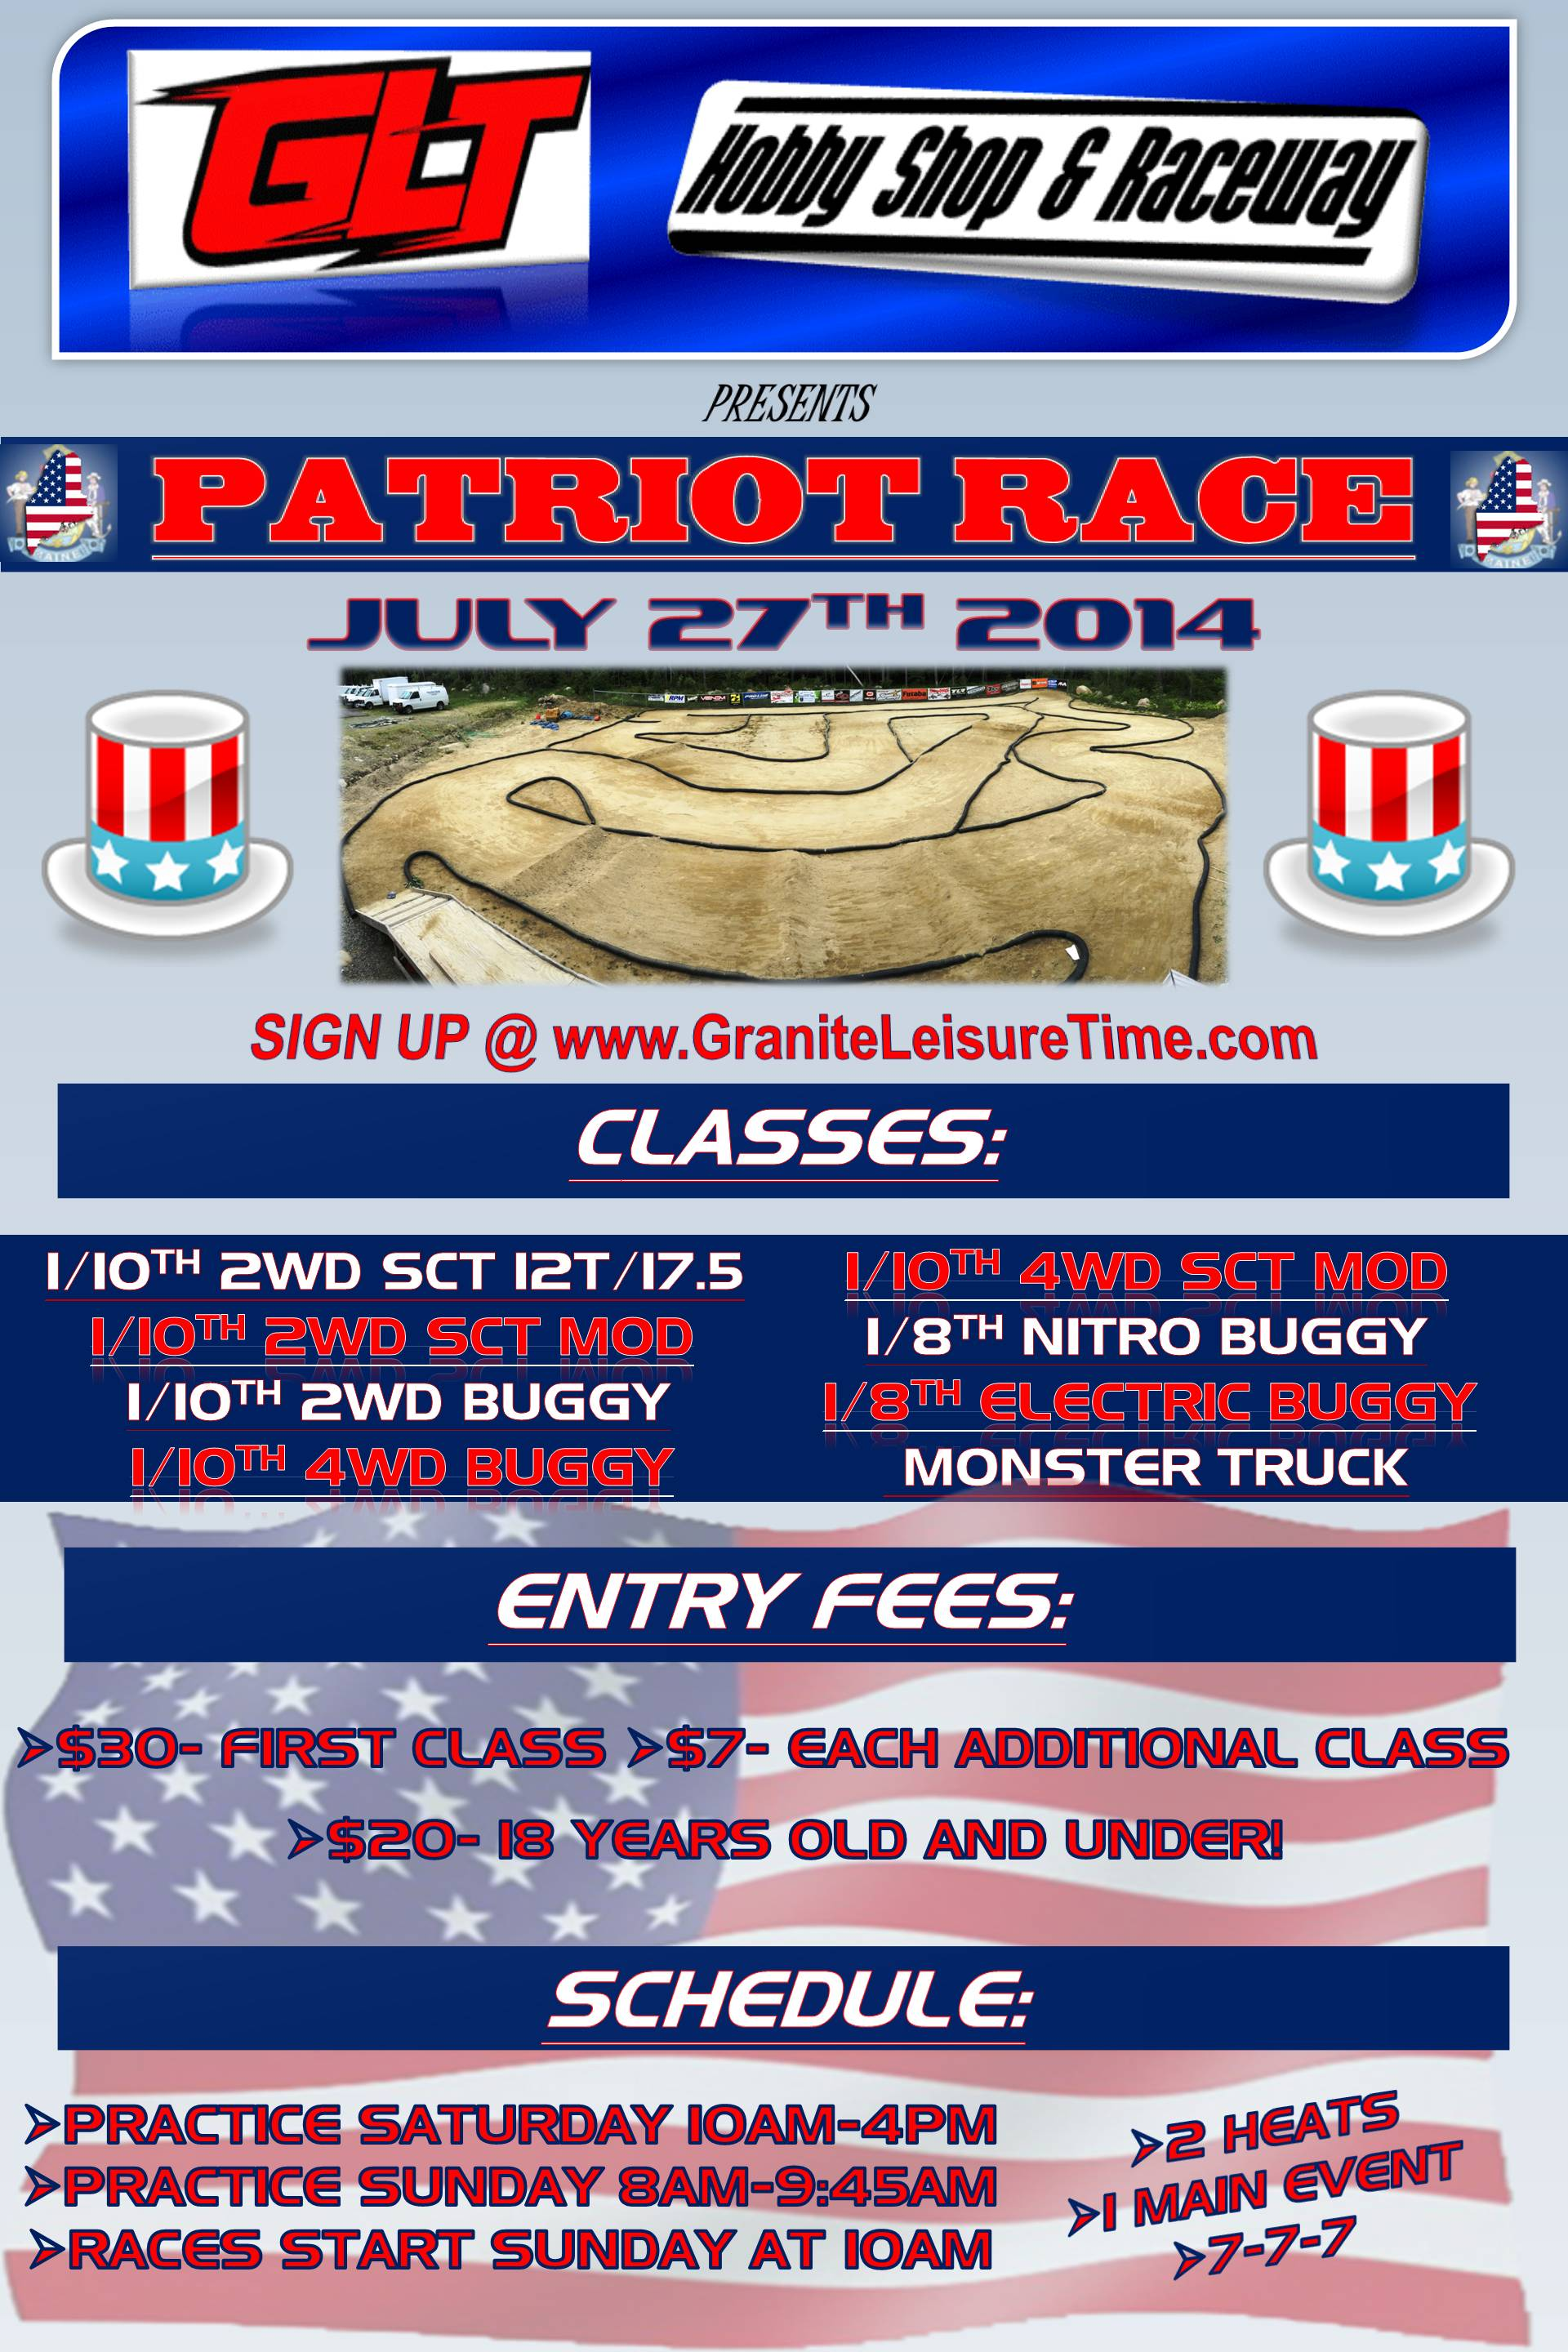 GLT Patriot Race 2014